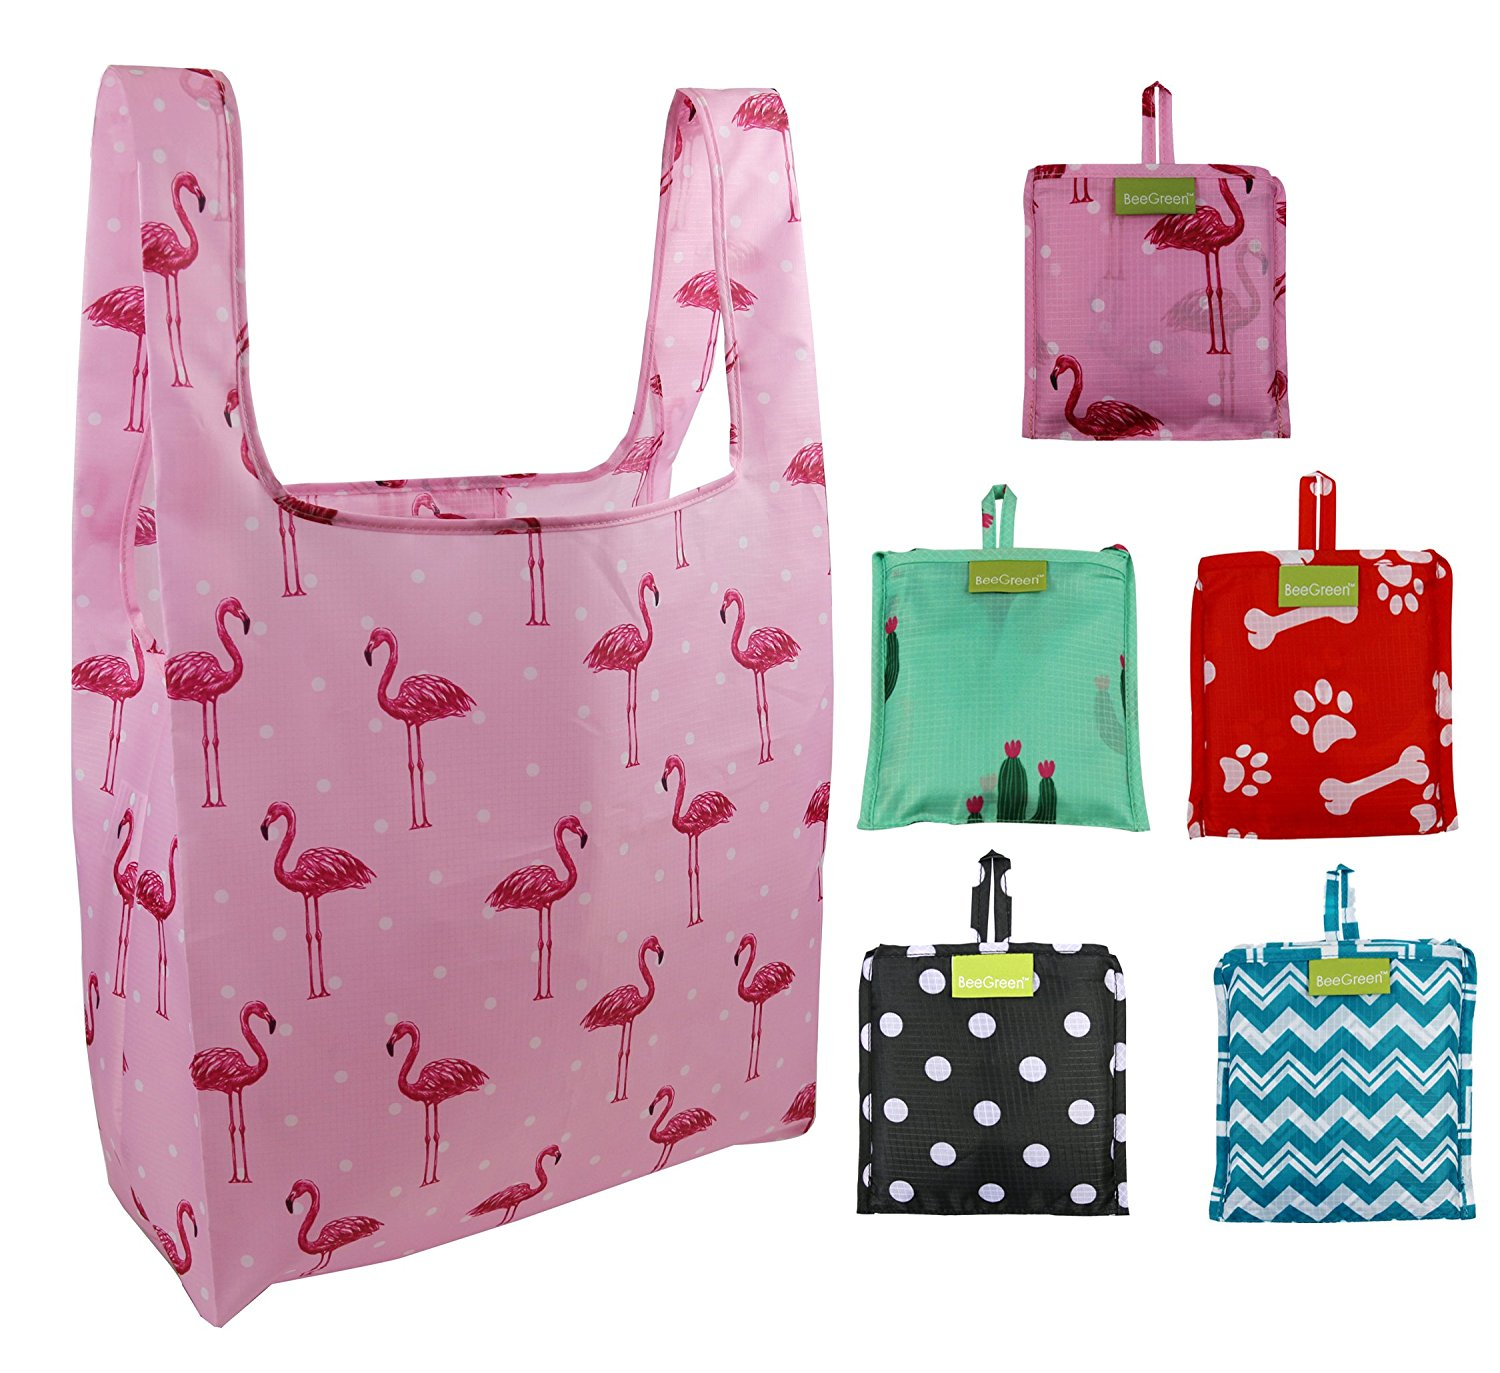 dd39e023f Get Quotations · Foldable Reusable Grocery Bags 5 Cute Designs